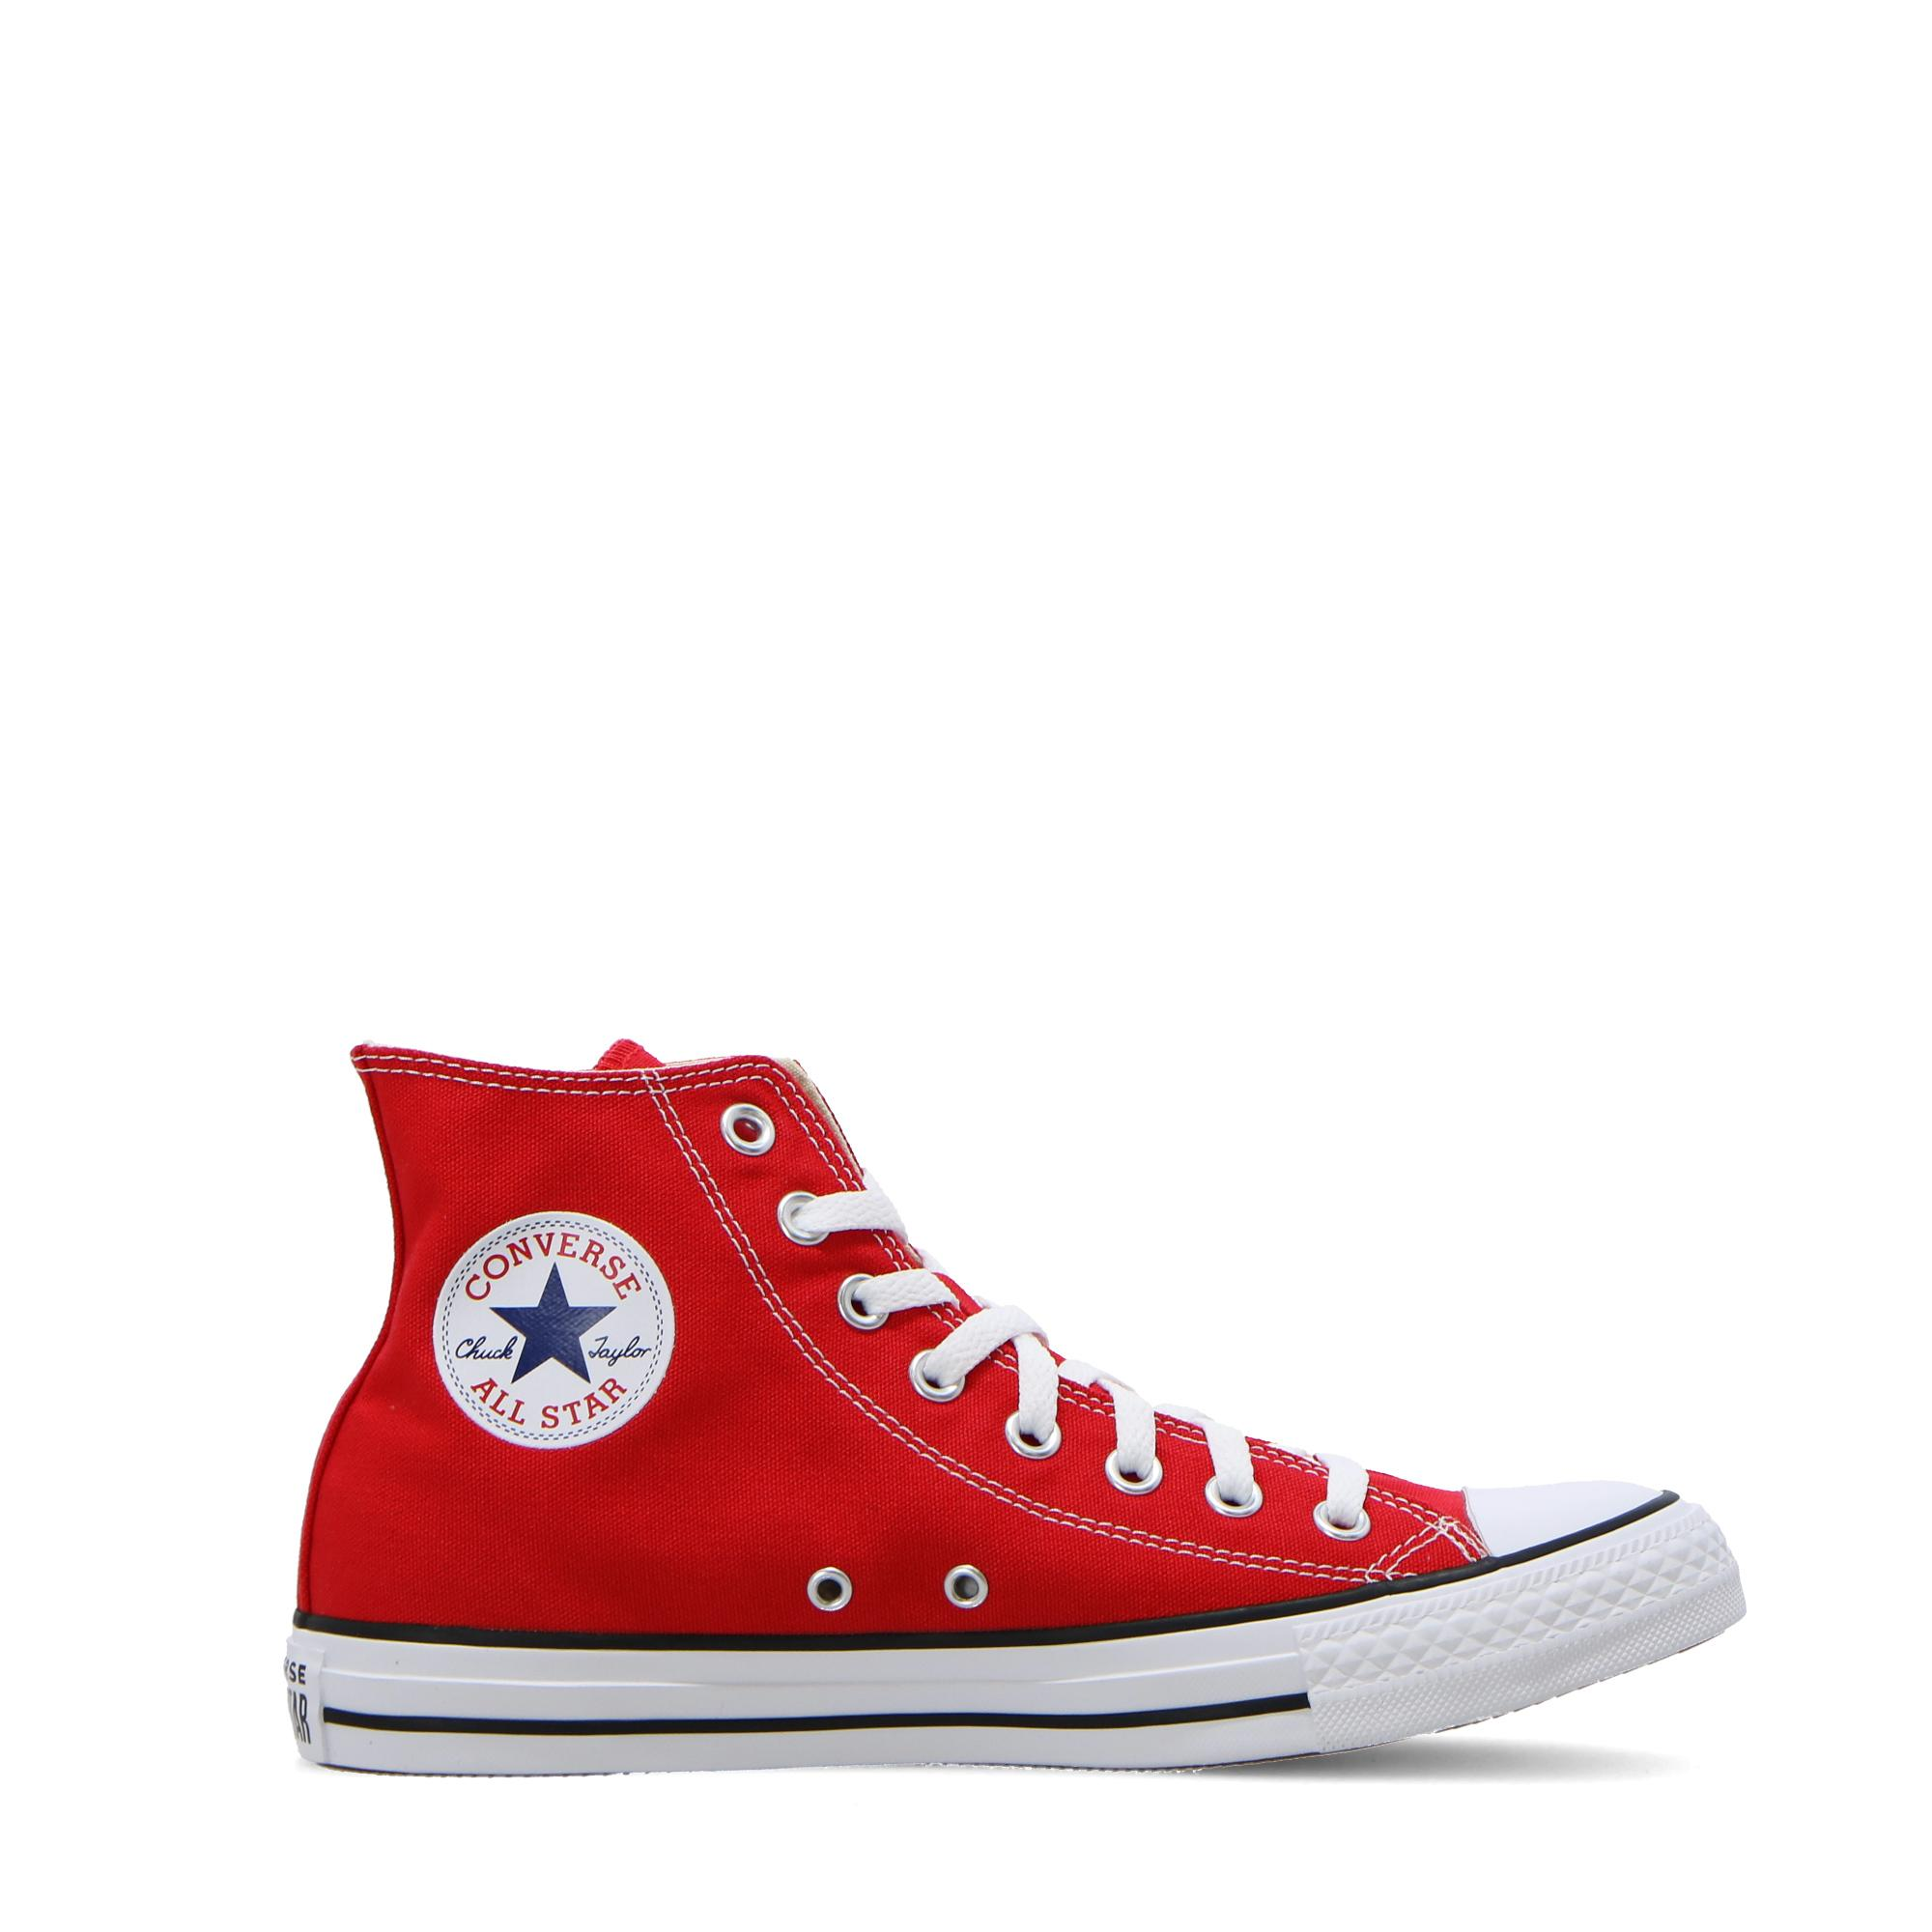 Converse Chuck Taylor All Star  Seasonal Hi RED